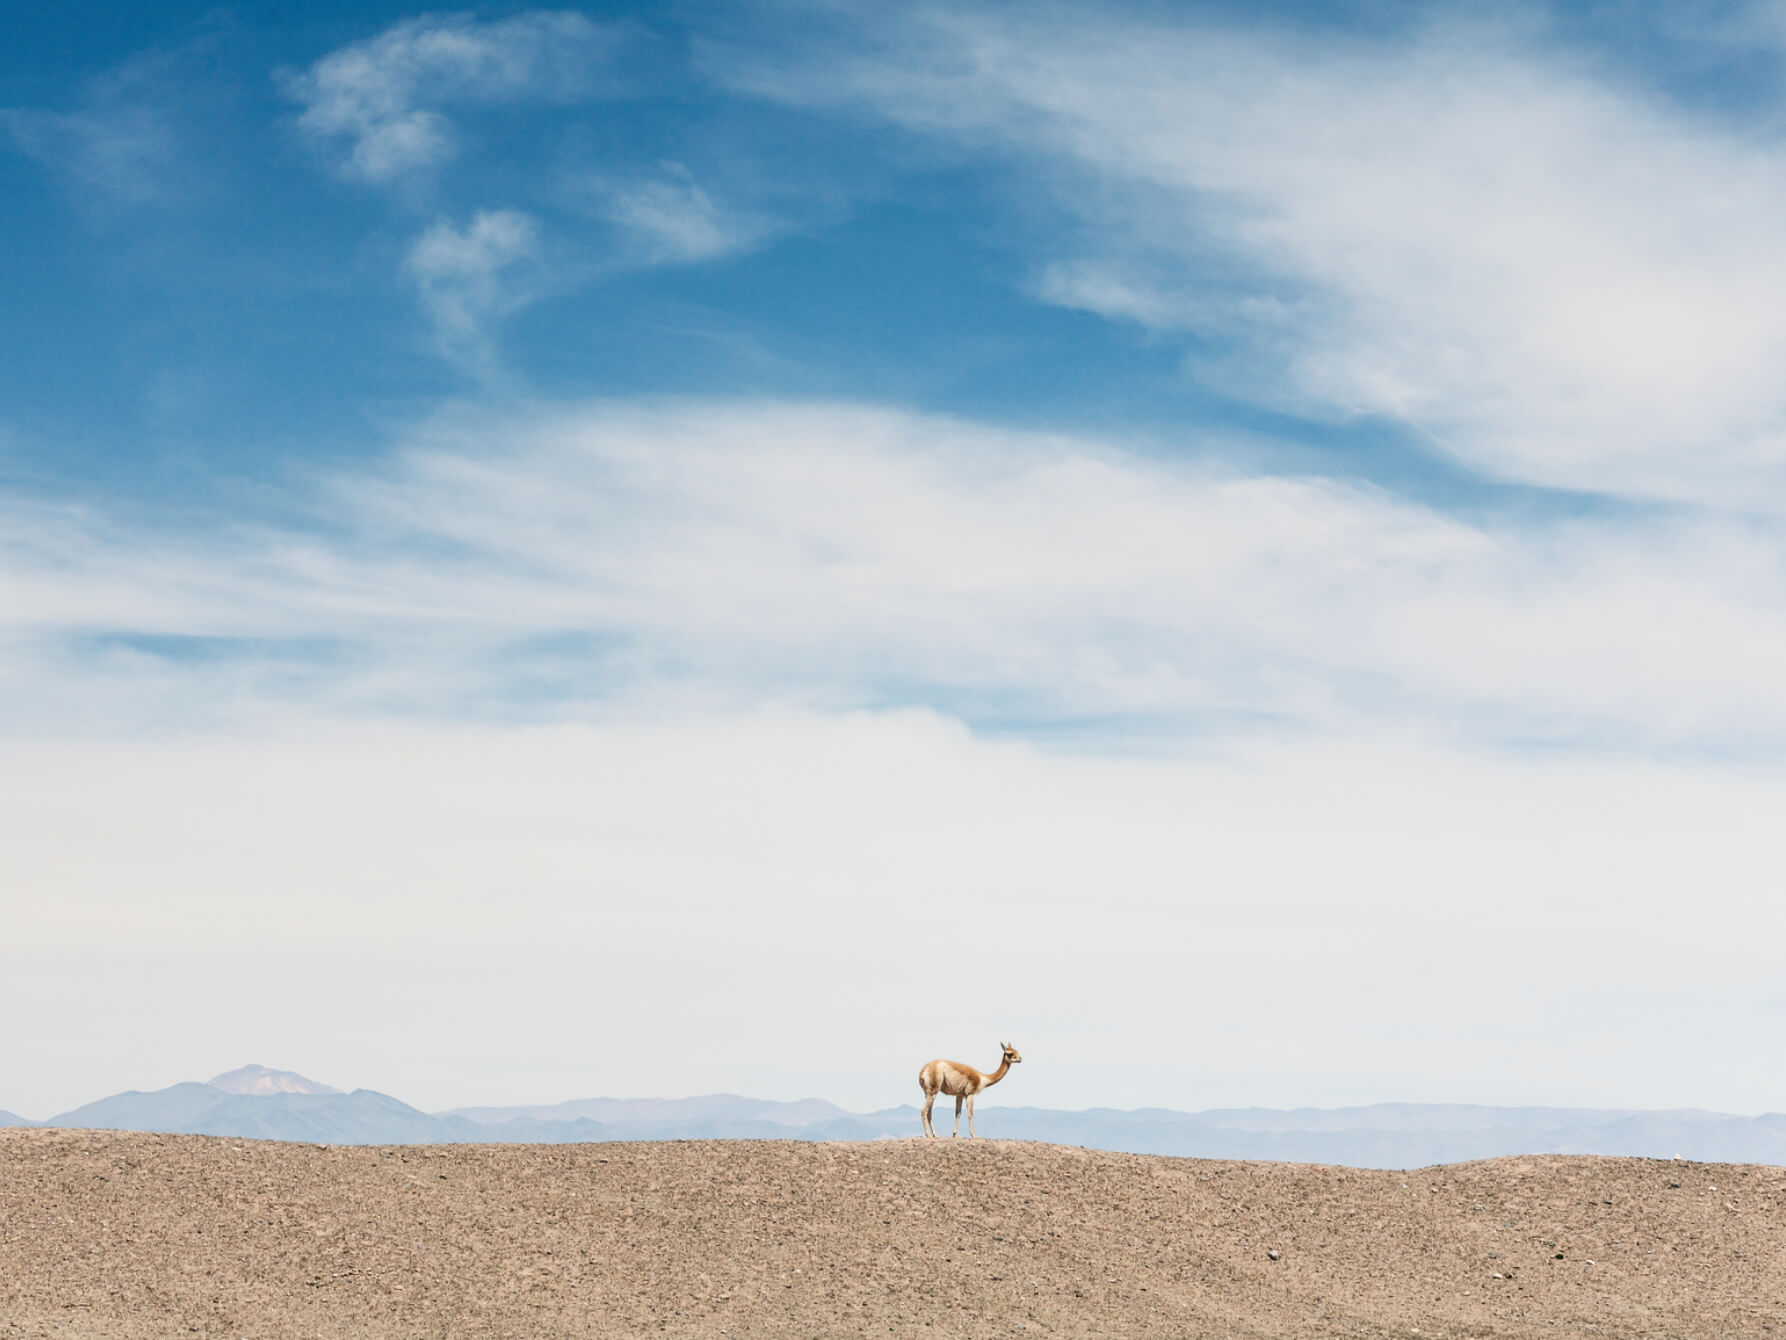 A Vicuna in the wildeness